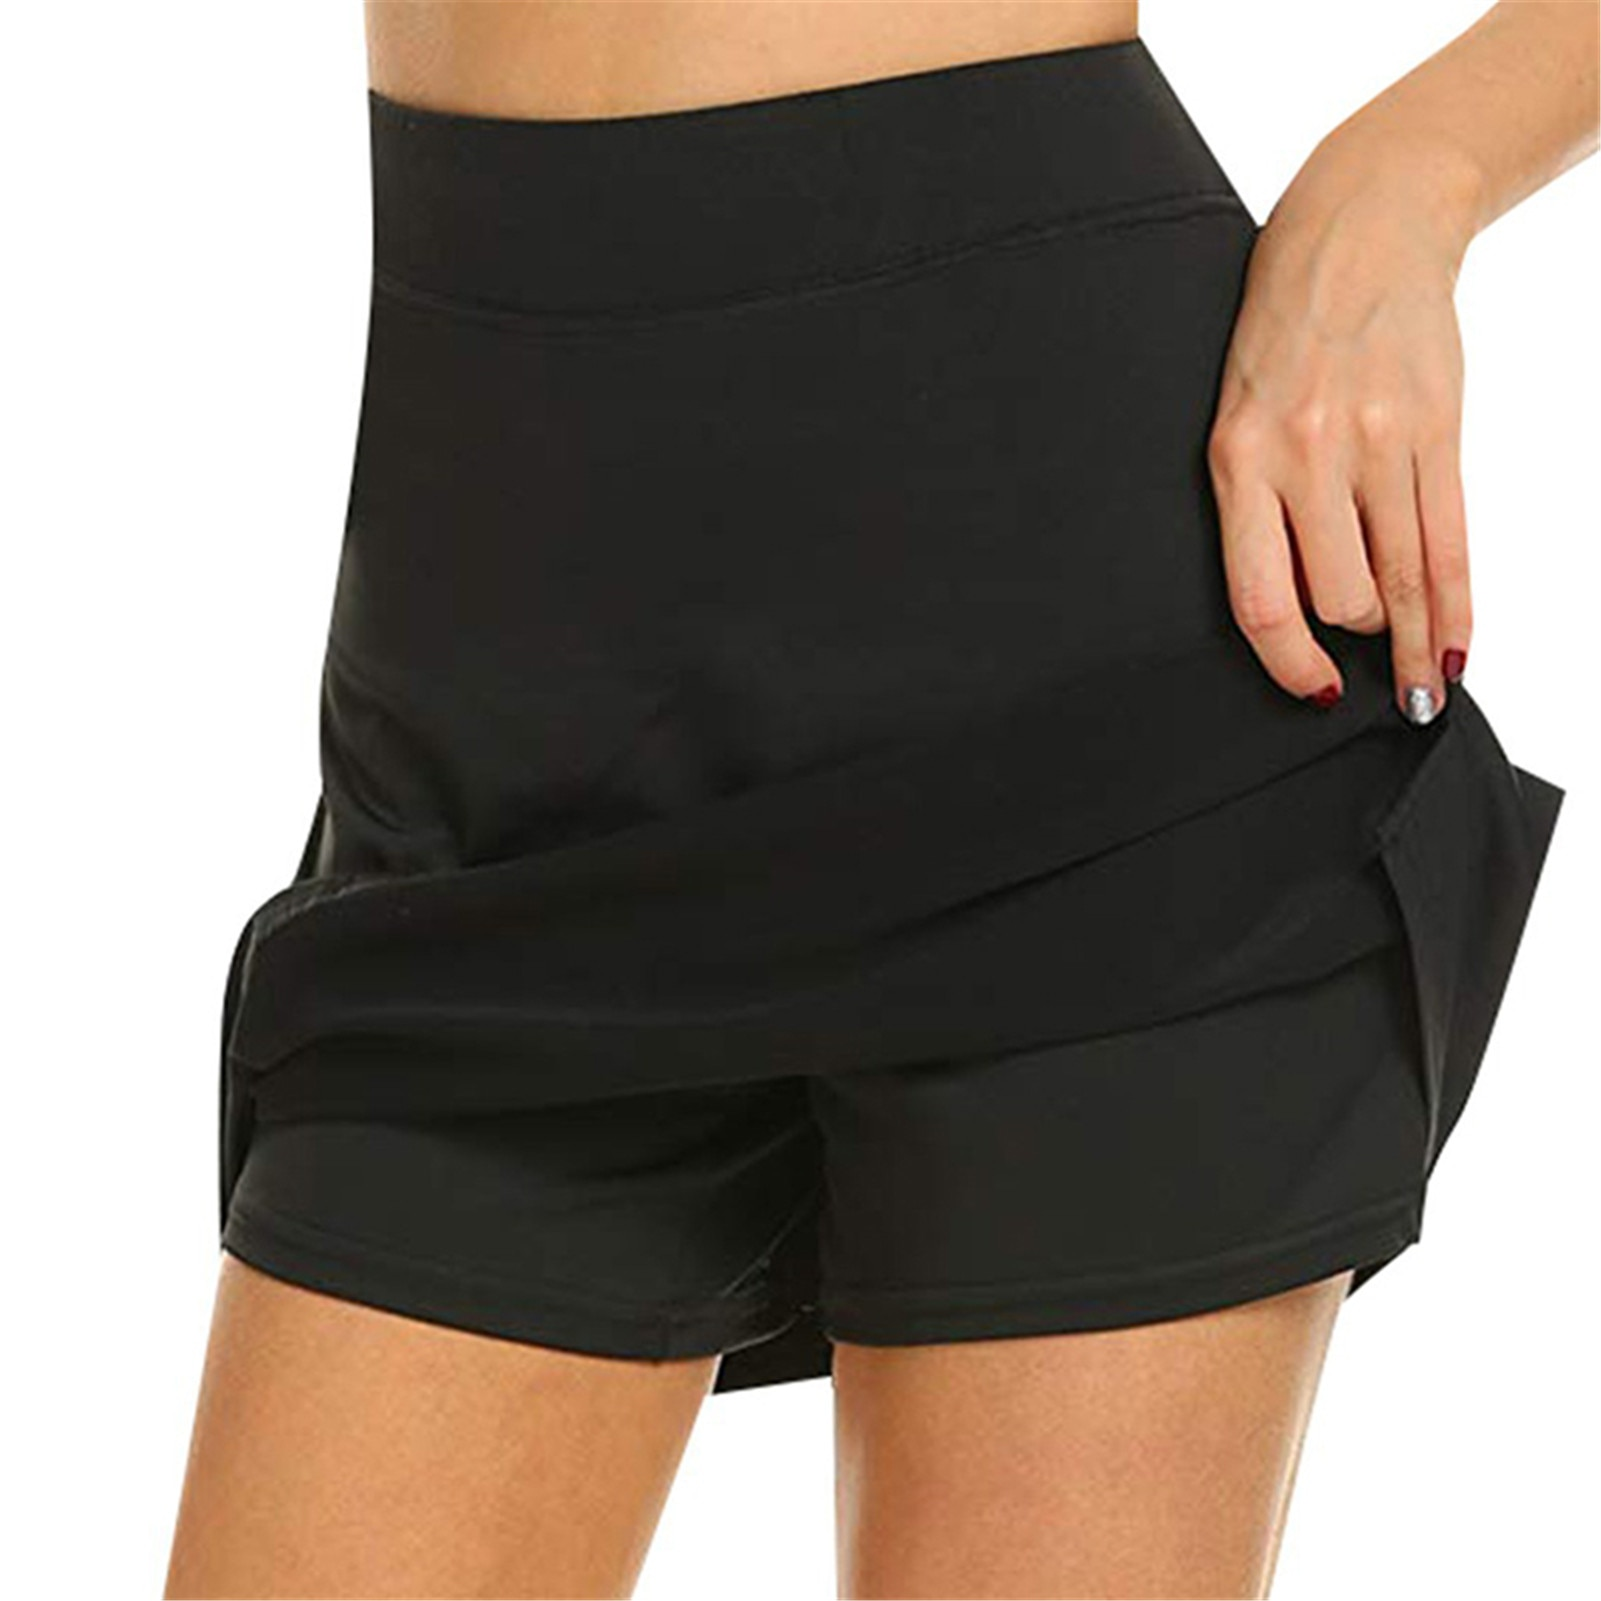 Newly Anti-Chafing Active Skorts Super Soft Comfortable Women's Athletic Lightweight Skirts With Shorts Pockets Running Tennis m